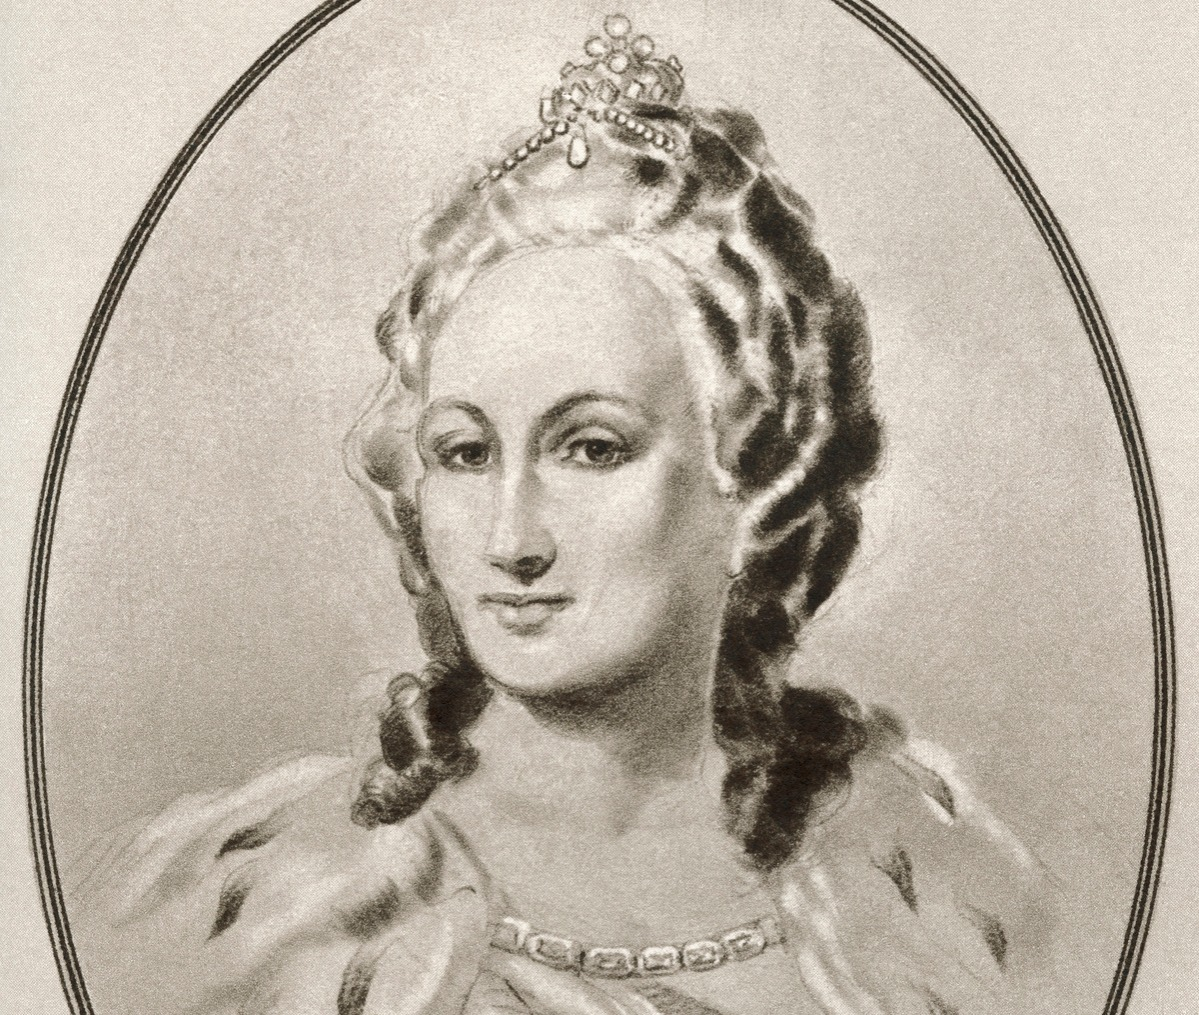 Catherine II, 1729 - 1796, aka Catherine the Great was born as Prussian Sophie von Anhalt-Zerbst